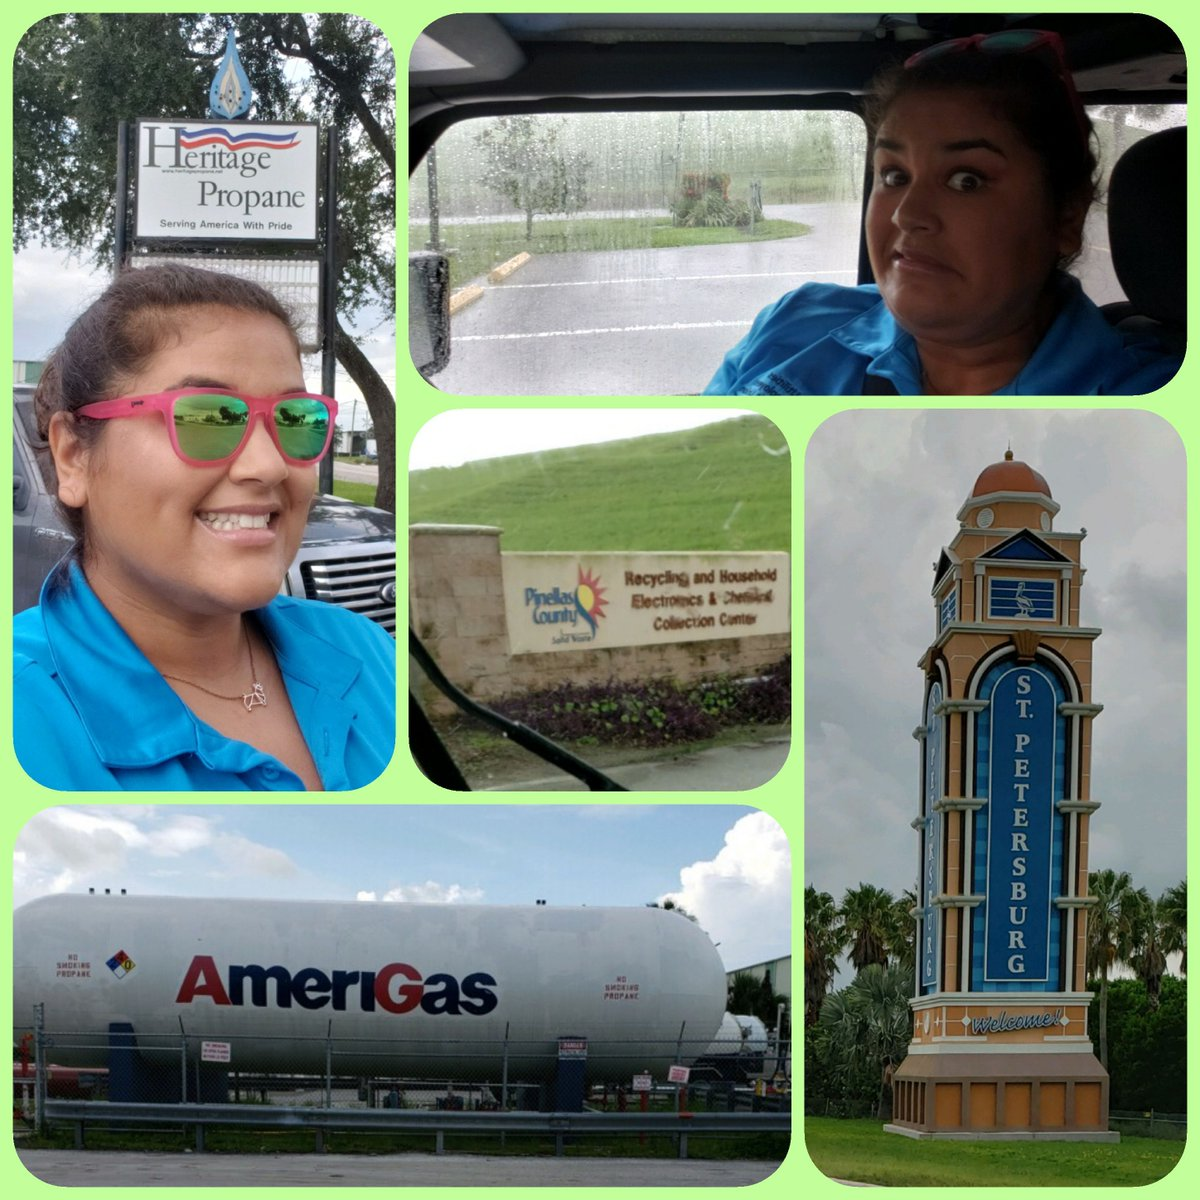 Paula brought her own sunshine to @amerigas_propane, @advdisposal and more today in #Florida, and she'll catch up with @duke_energy friends tomorrow! Your coworkers deserve a UECU visit! Check it out: https://t.co/TChZFSAuXV  #rain #bringit #UECUhappy #UECUeverywhere #TravelLife https://t.co/PH1JZUvqKM